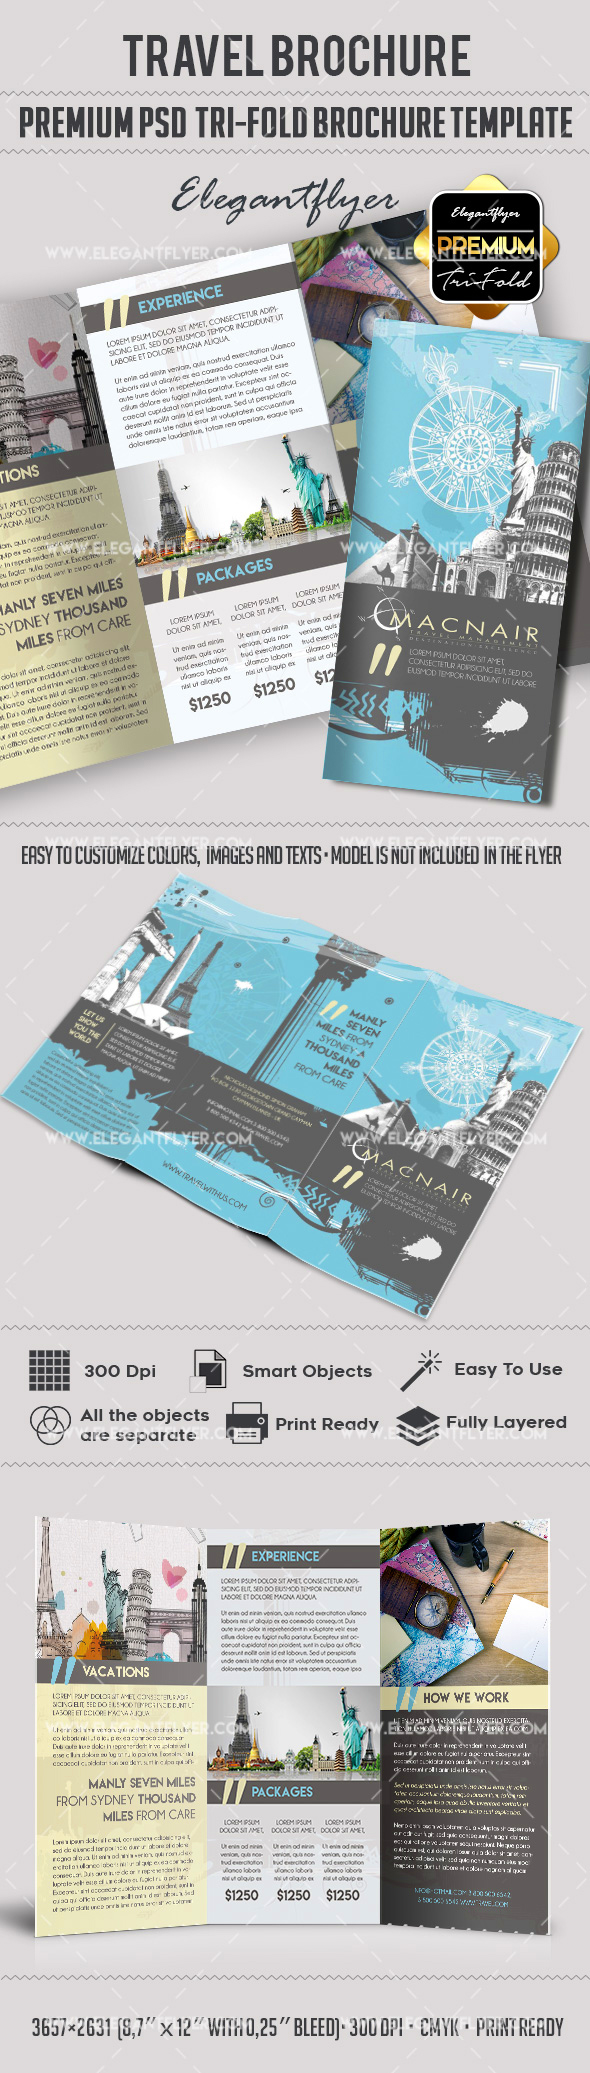 3d brochure templates psd - old travel brochure template by elegantflyer